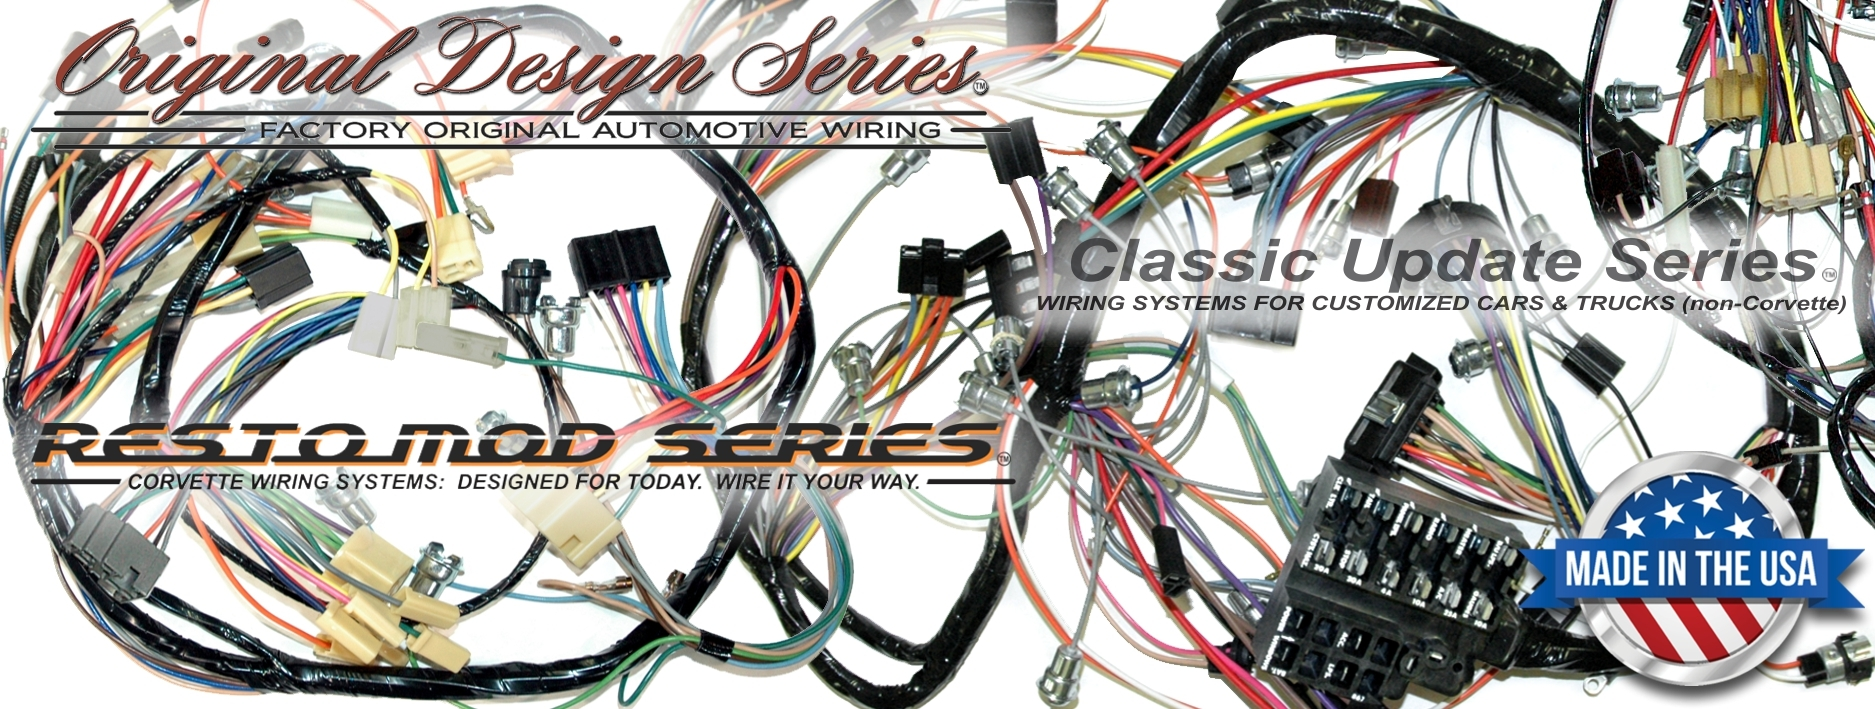 new header wiring_harnesses exact oem reproduction wiring harnesses and restomod wiring c3 corvette engine wiring harness at nearapp.co